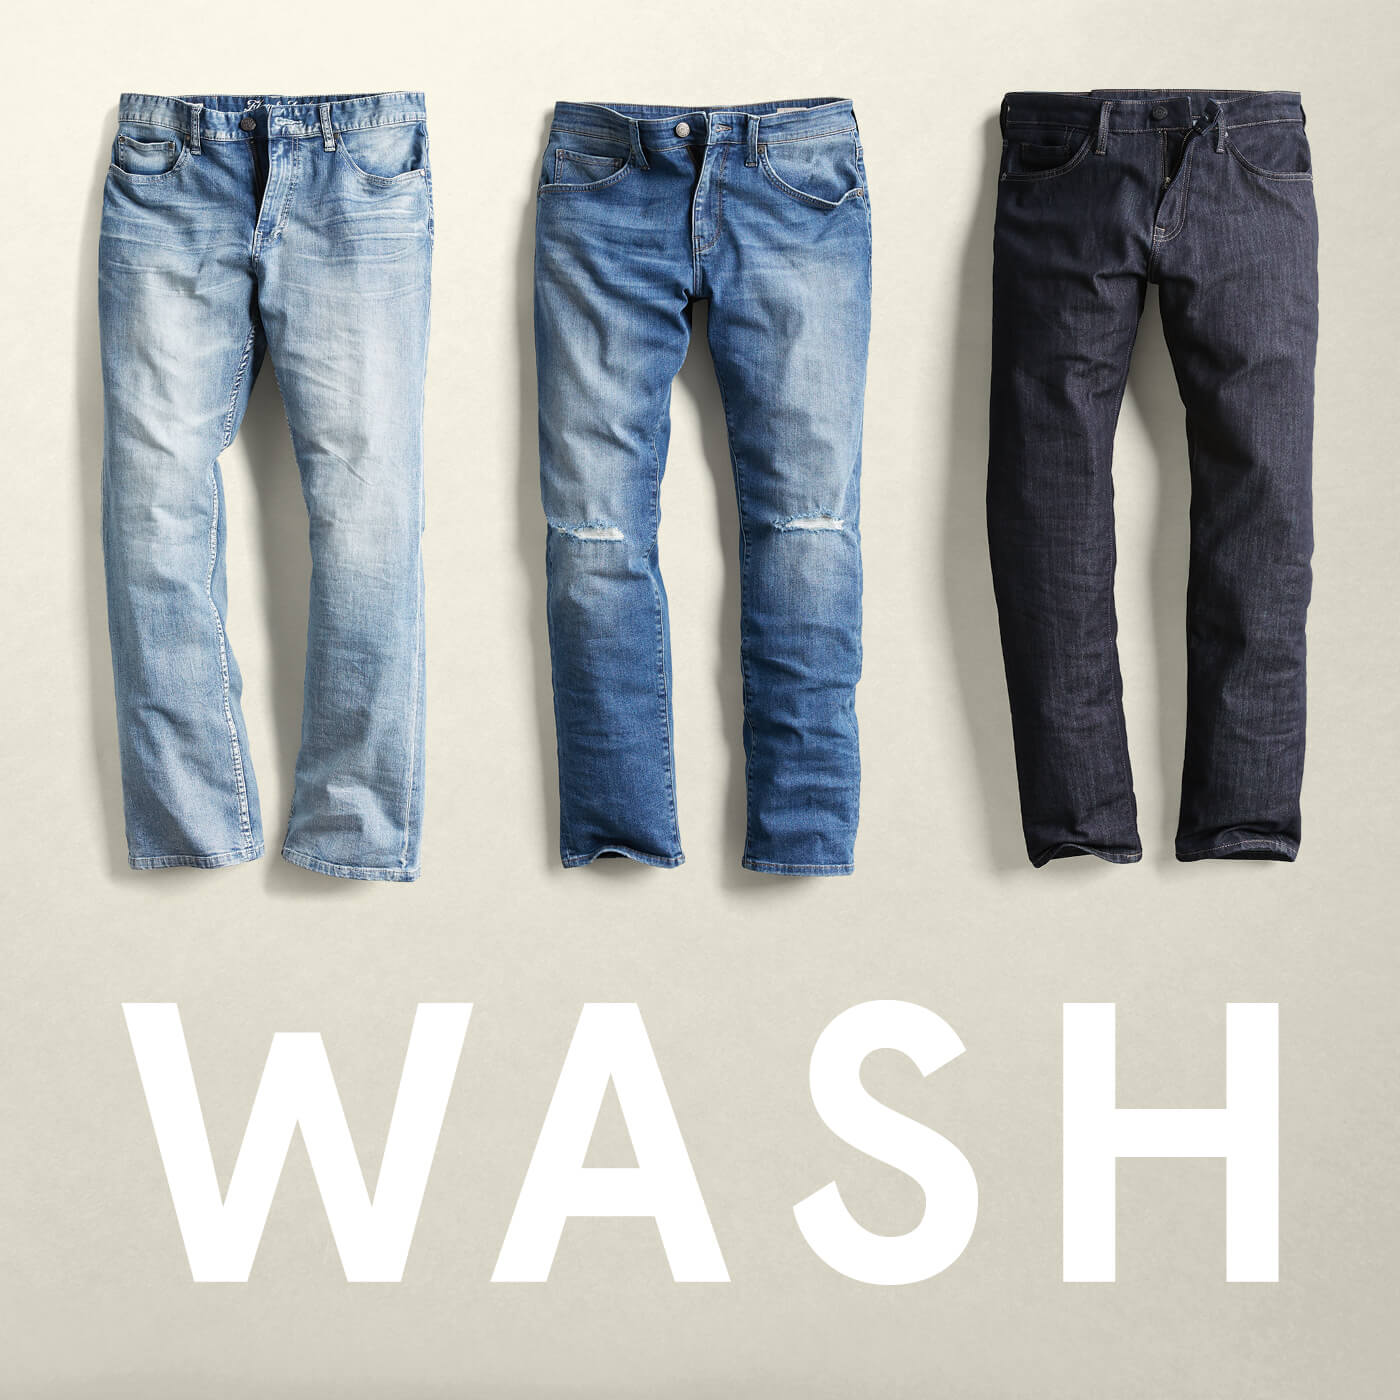 How to Choose a Denim Wash